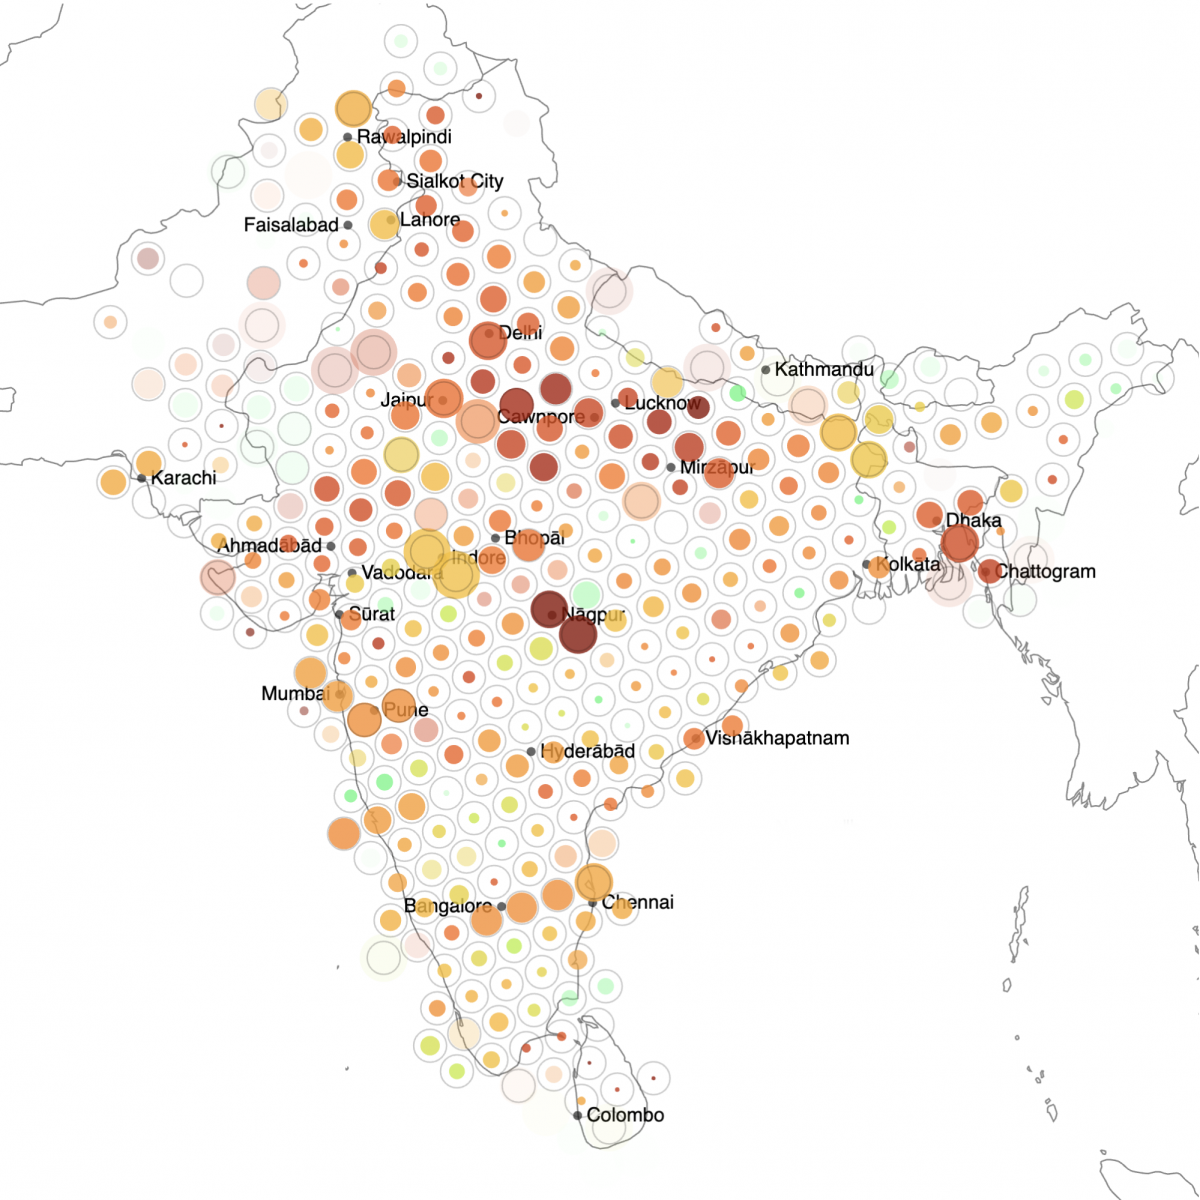 Geofenced Searches on Twitter: A Case Study Detailing South Asia's Covid Crisis